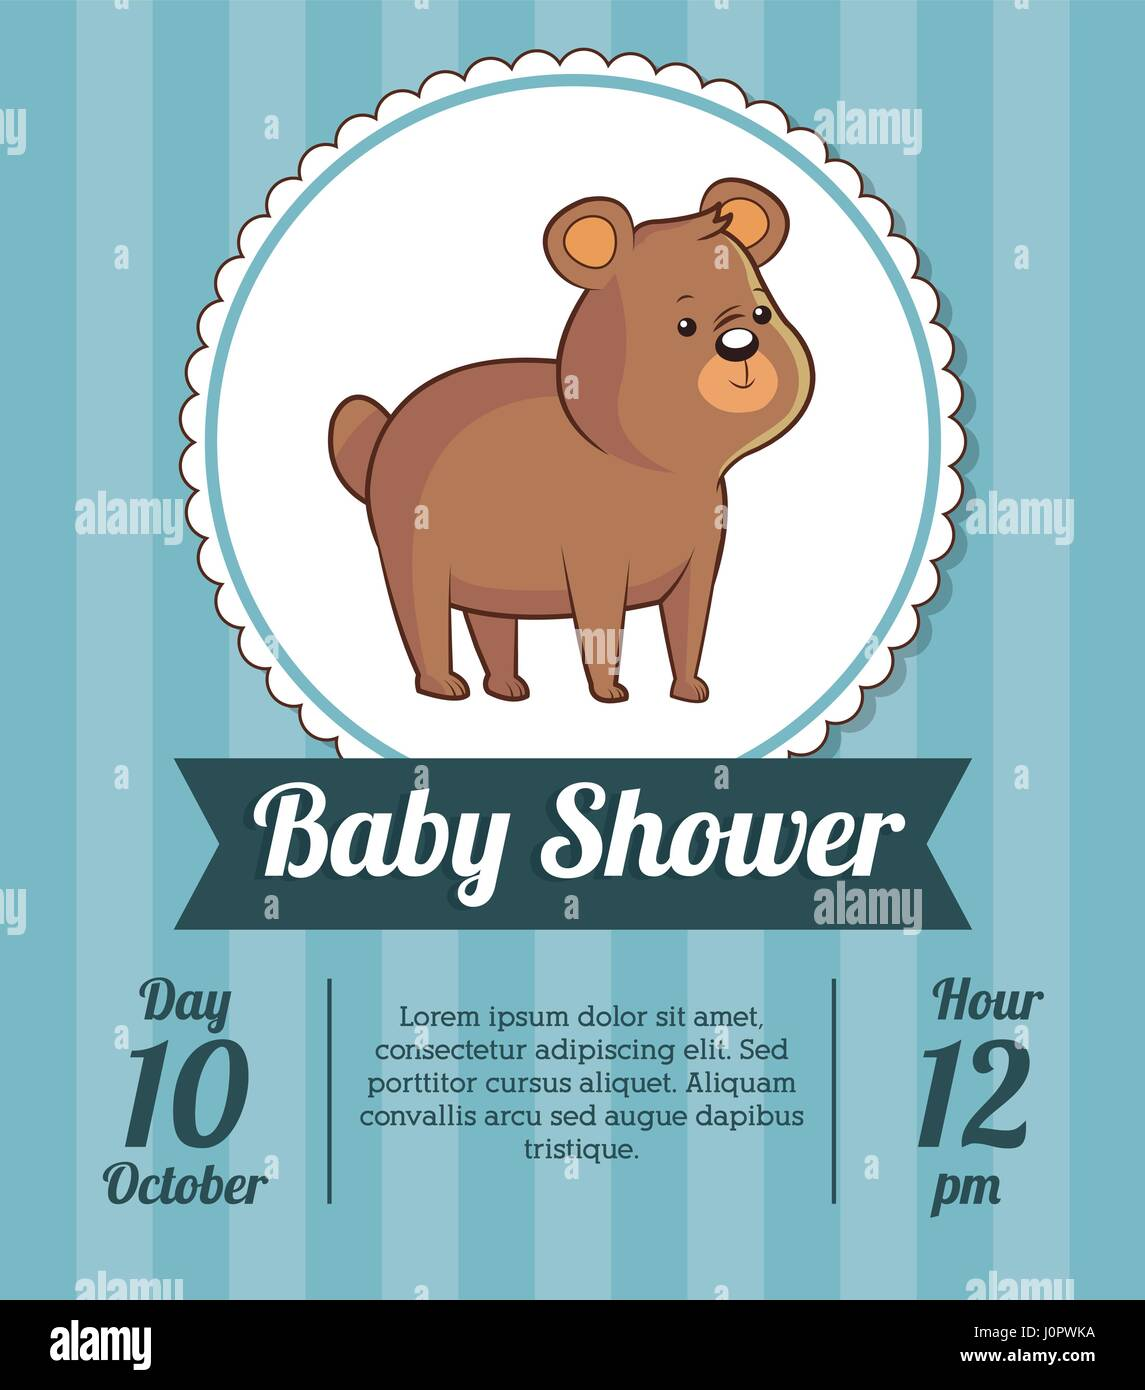 Baby Shower Card Invitation Save Date With Cute Bear Stock Vector